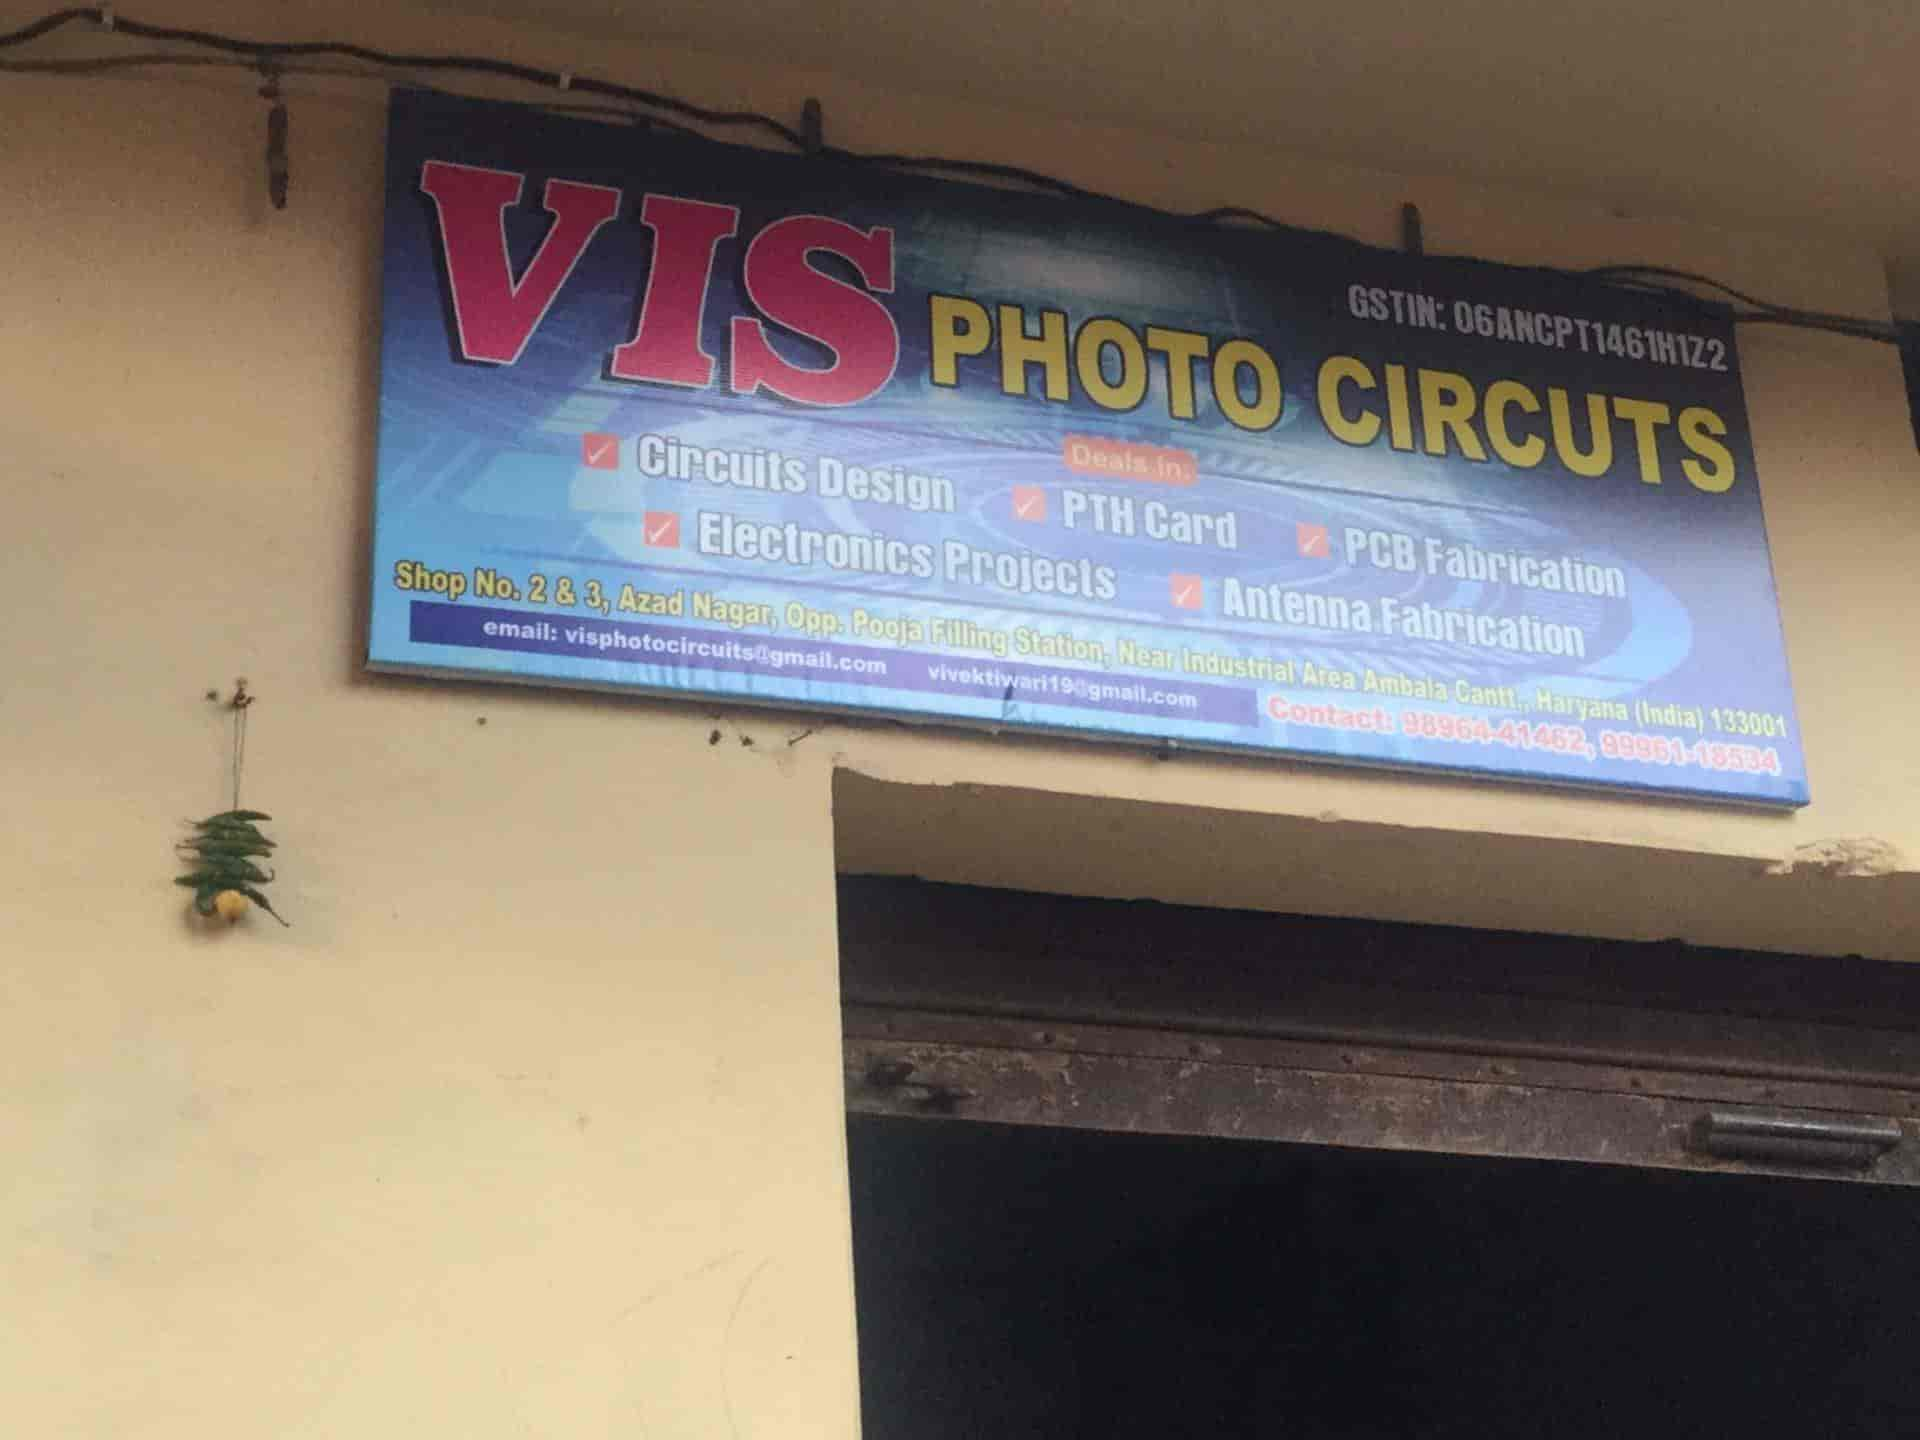 Vis Photo Circuit Cantt Foto Printed Board Electronic Design Services Designing In Ambala Justdial